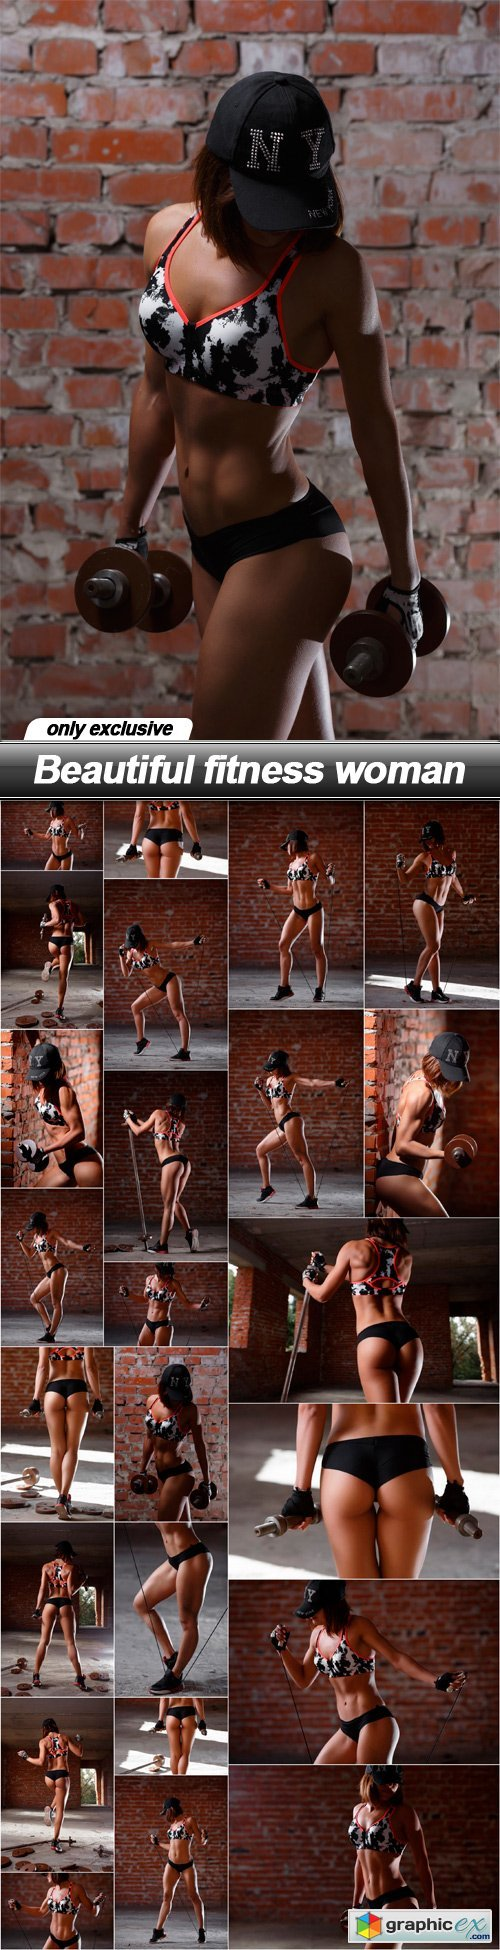 Beautiful fitness woman - 24 UHQ JPEG